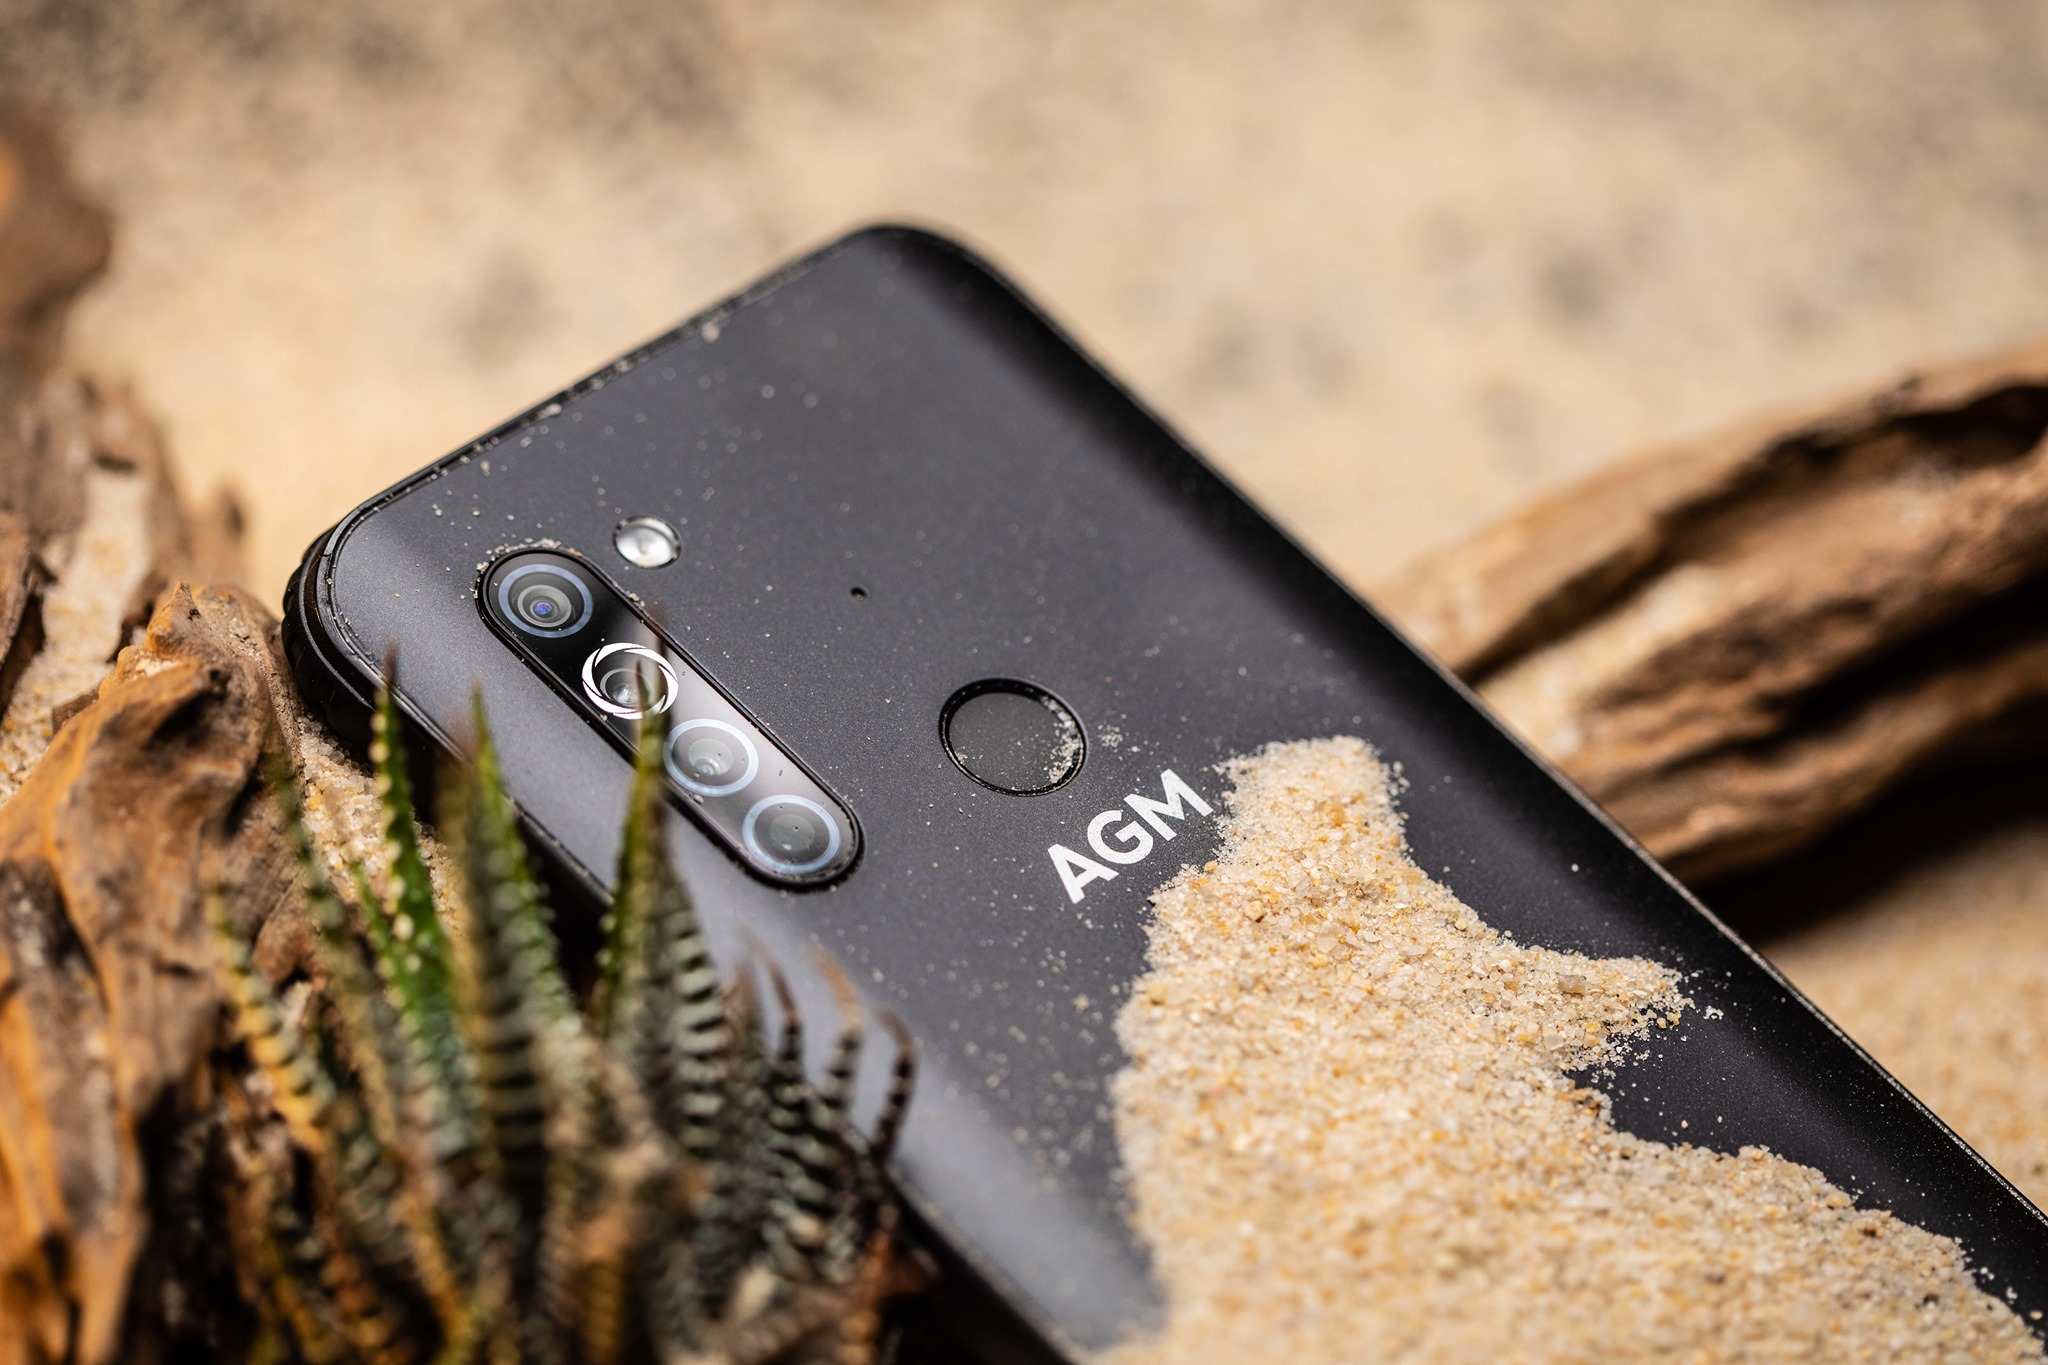 The #AGMX5 is fueled up by a 5600mAH battery with fast charging support of 18W.